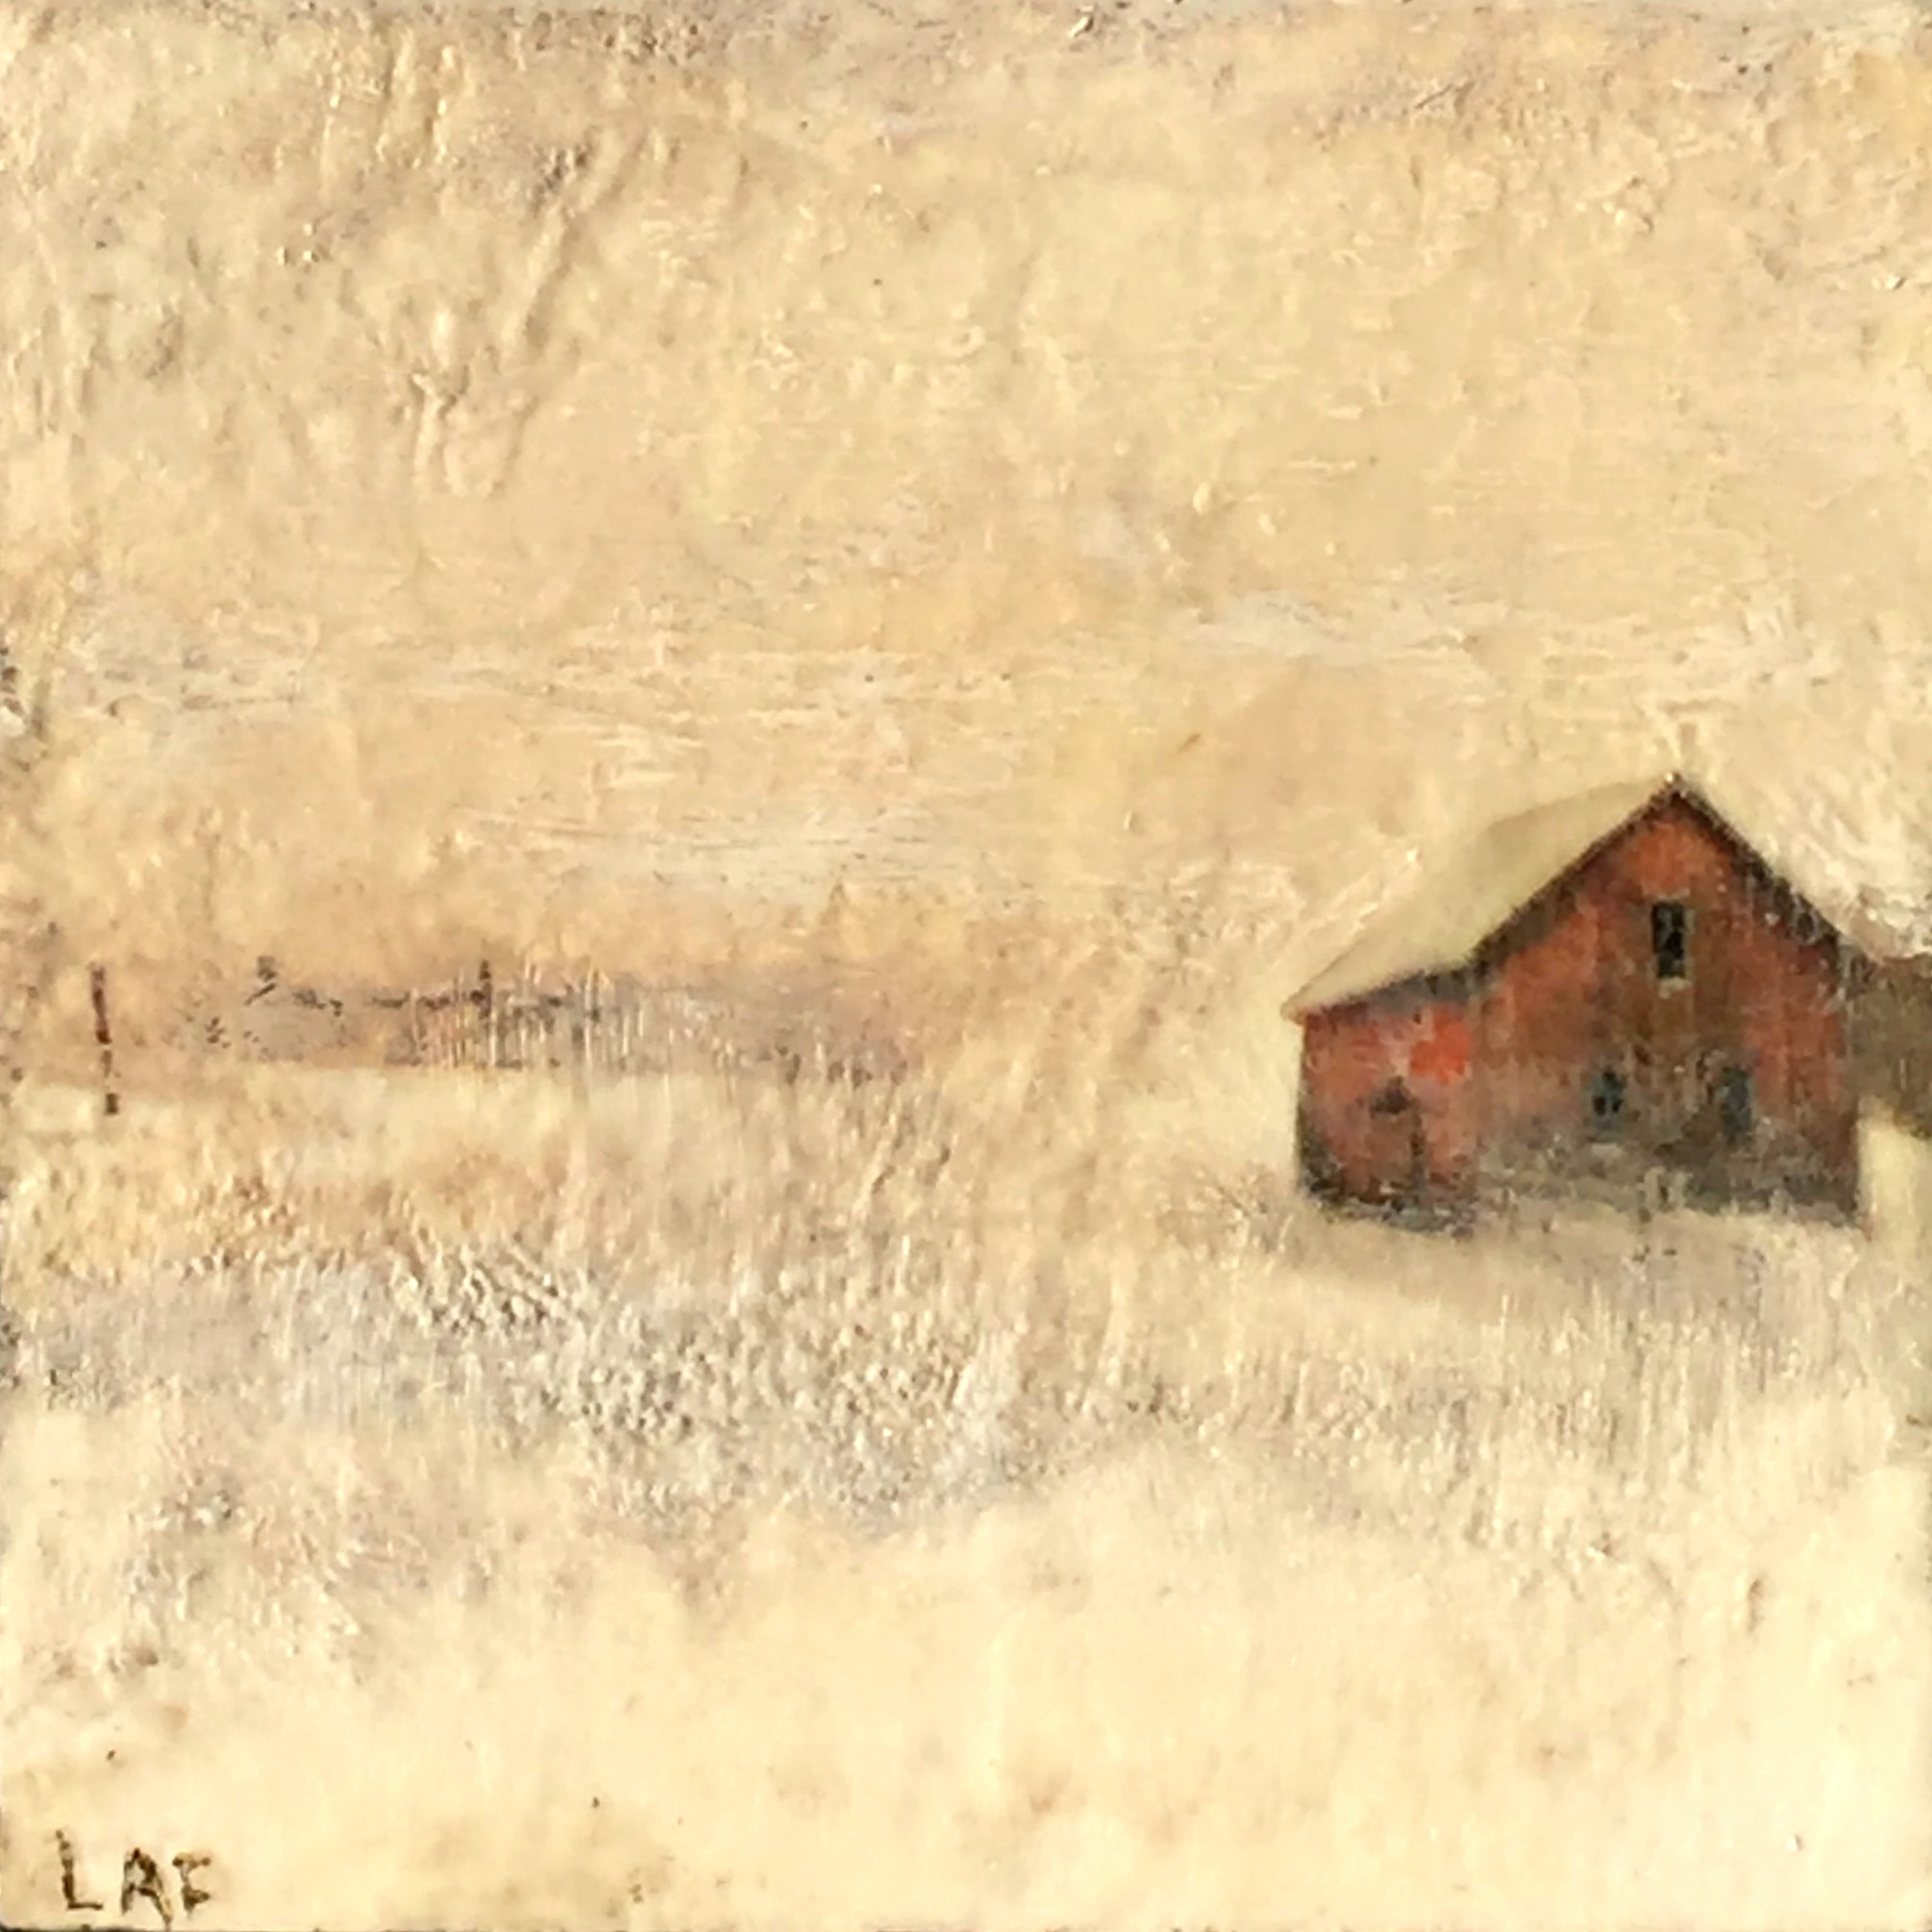 LaForge.The Old Homestead 2